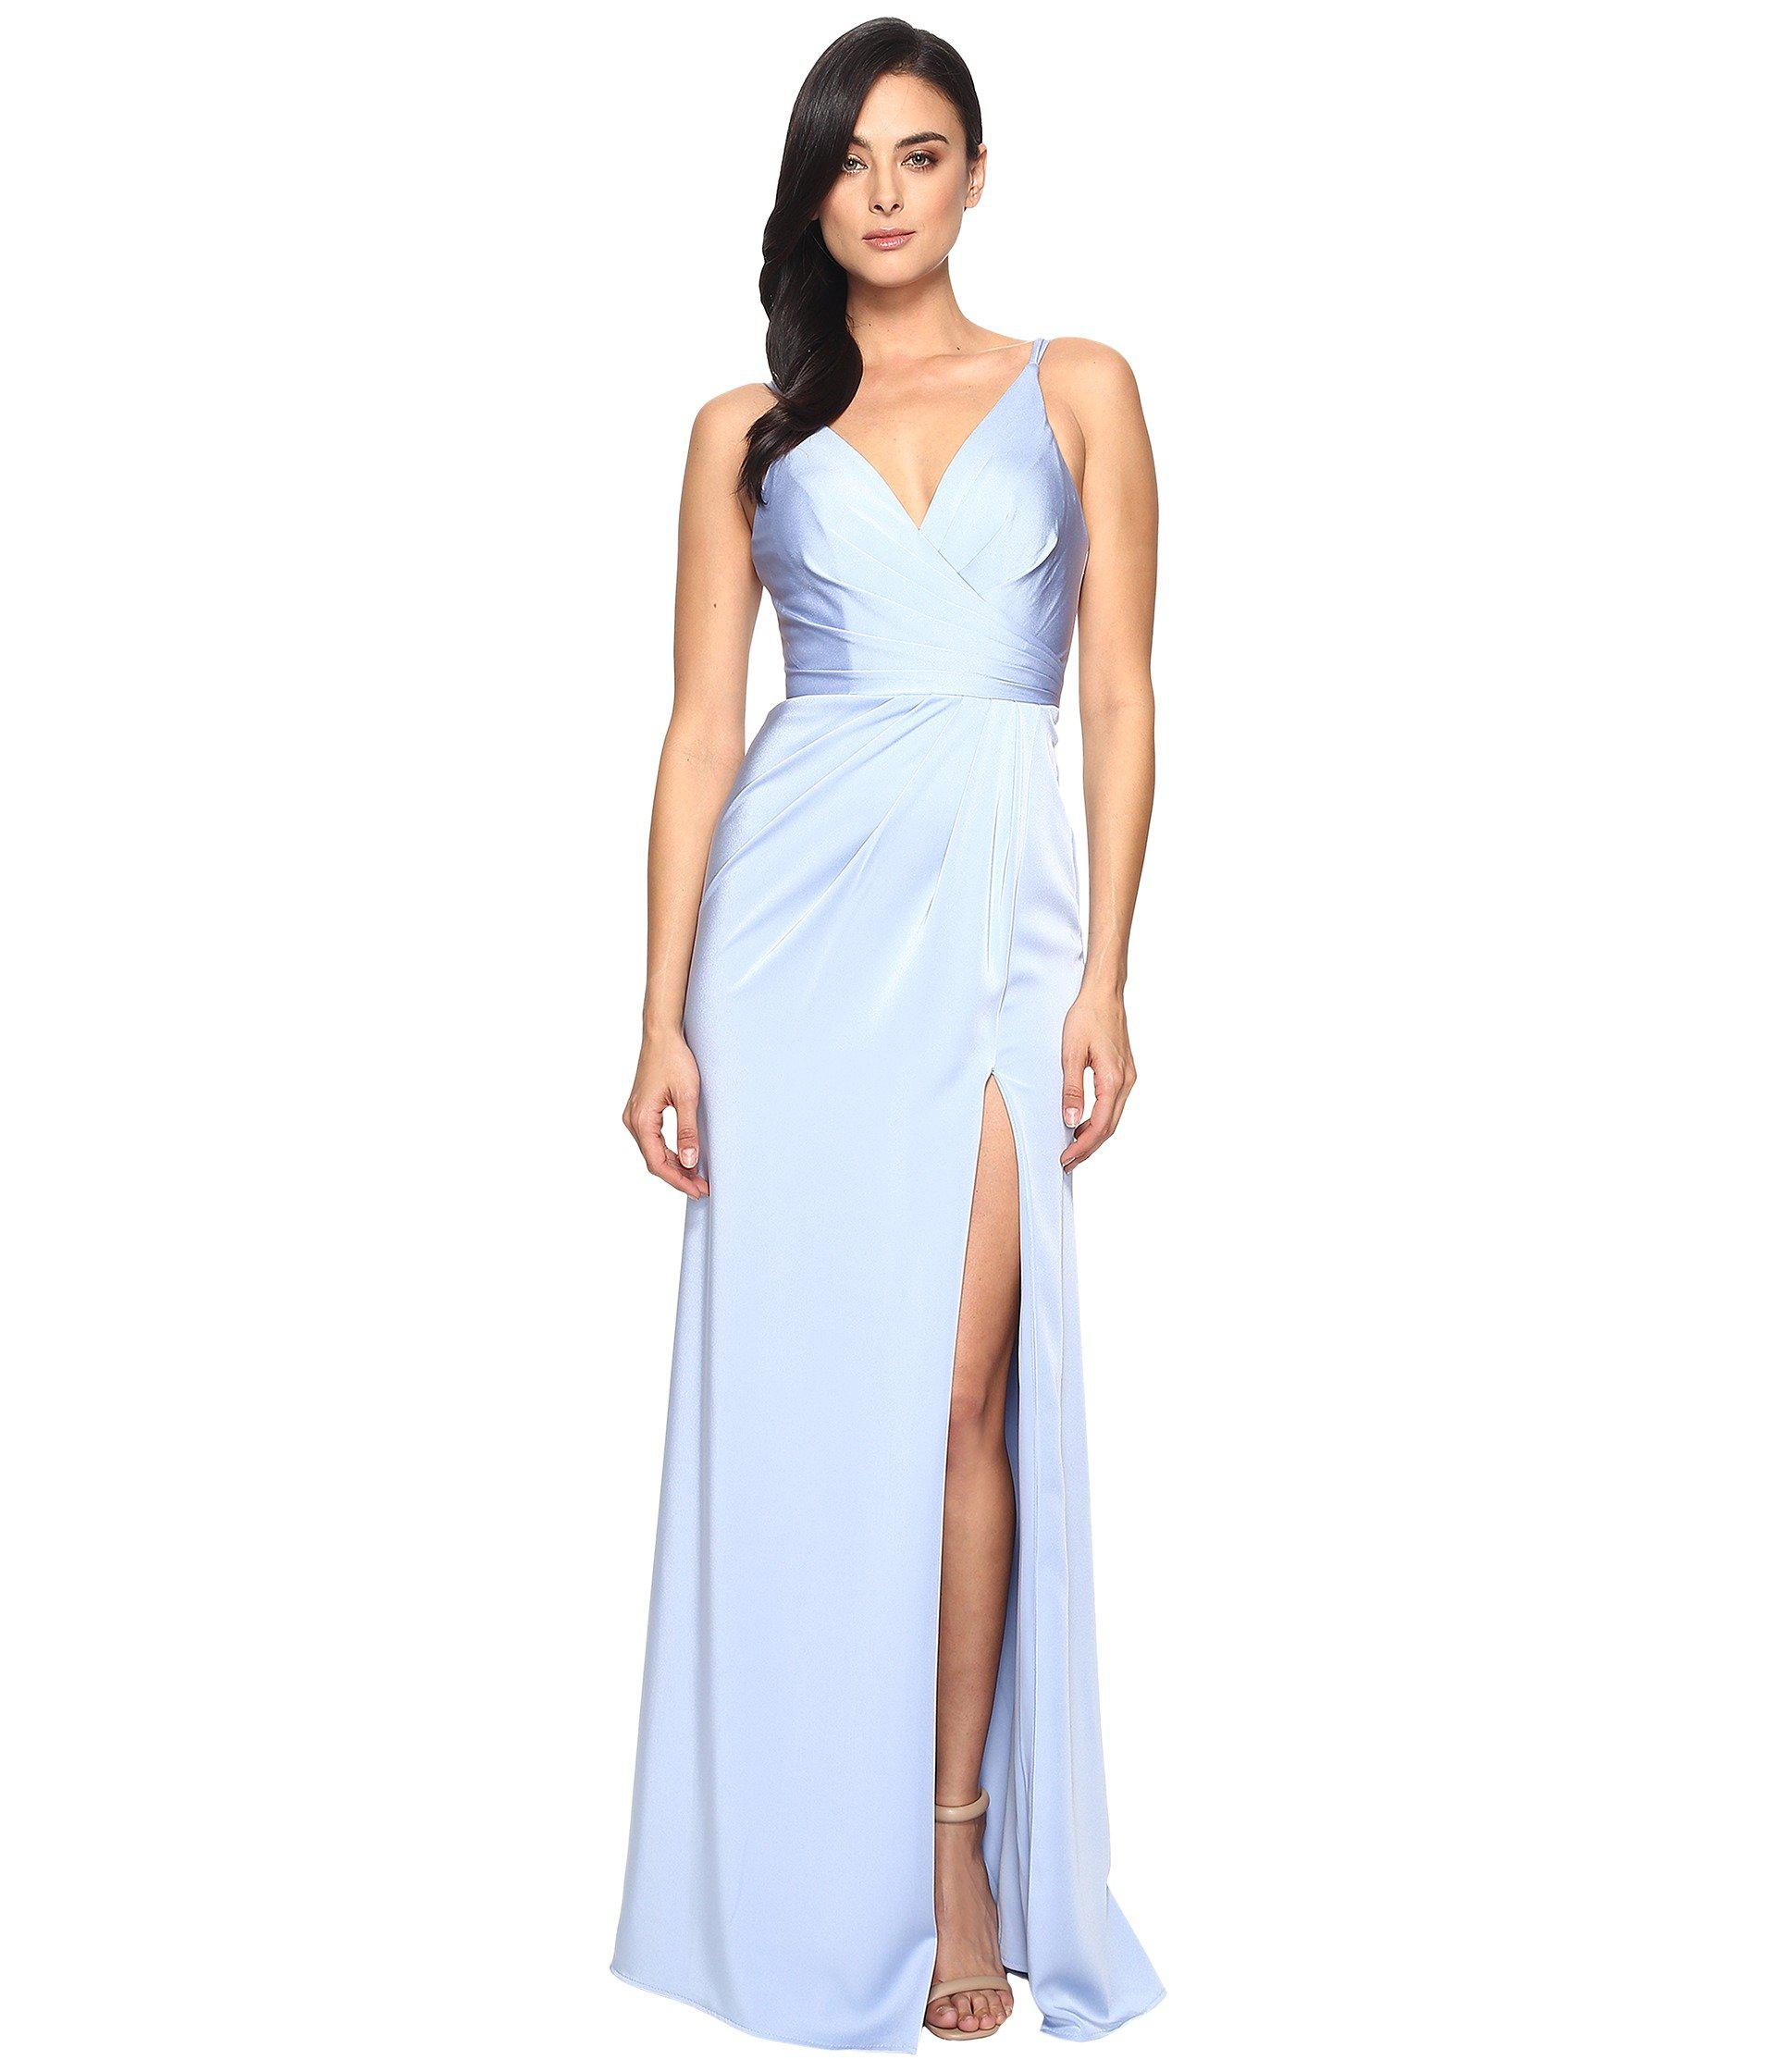 38a8feeae9d Faviana Satin Faille V-neck Gown W  Lightly Rouched Bodice ...